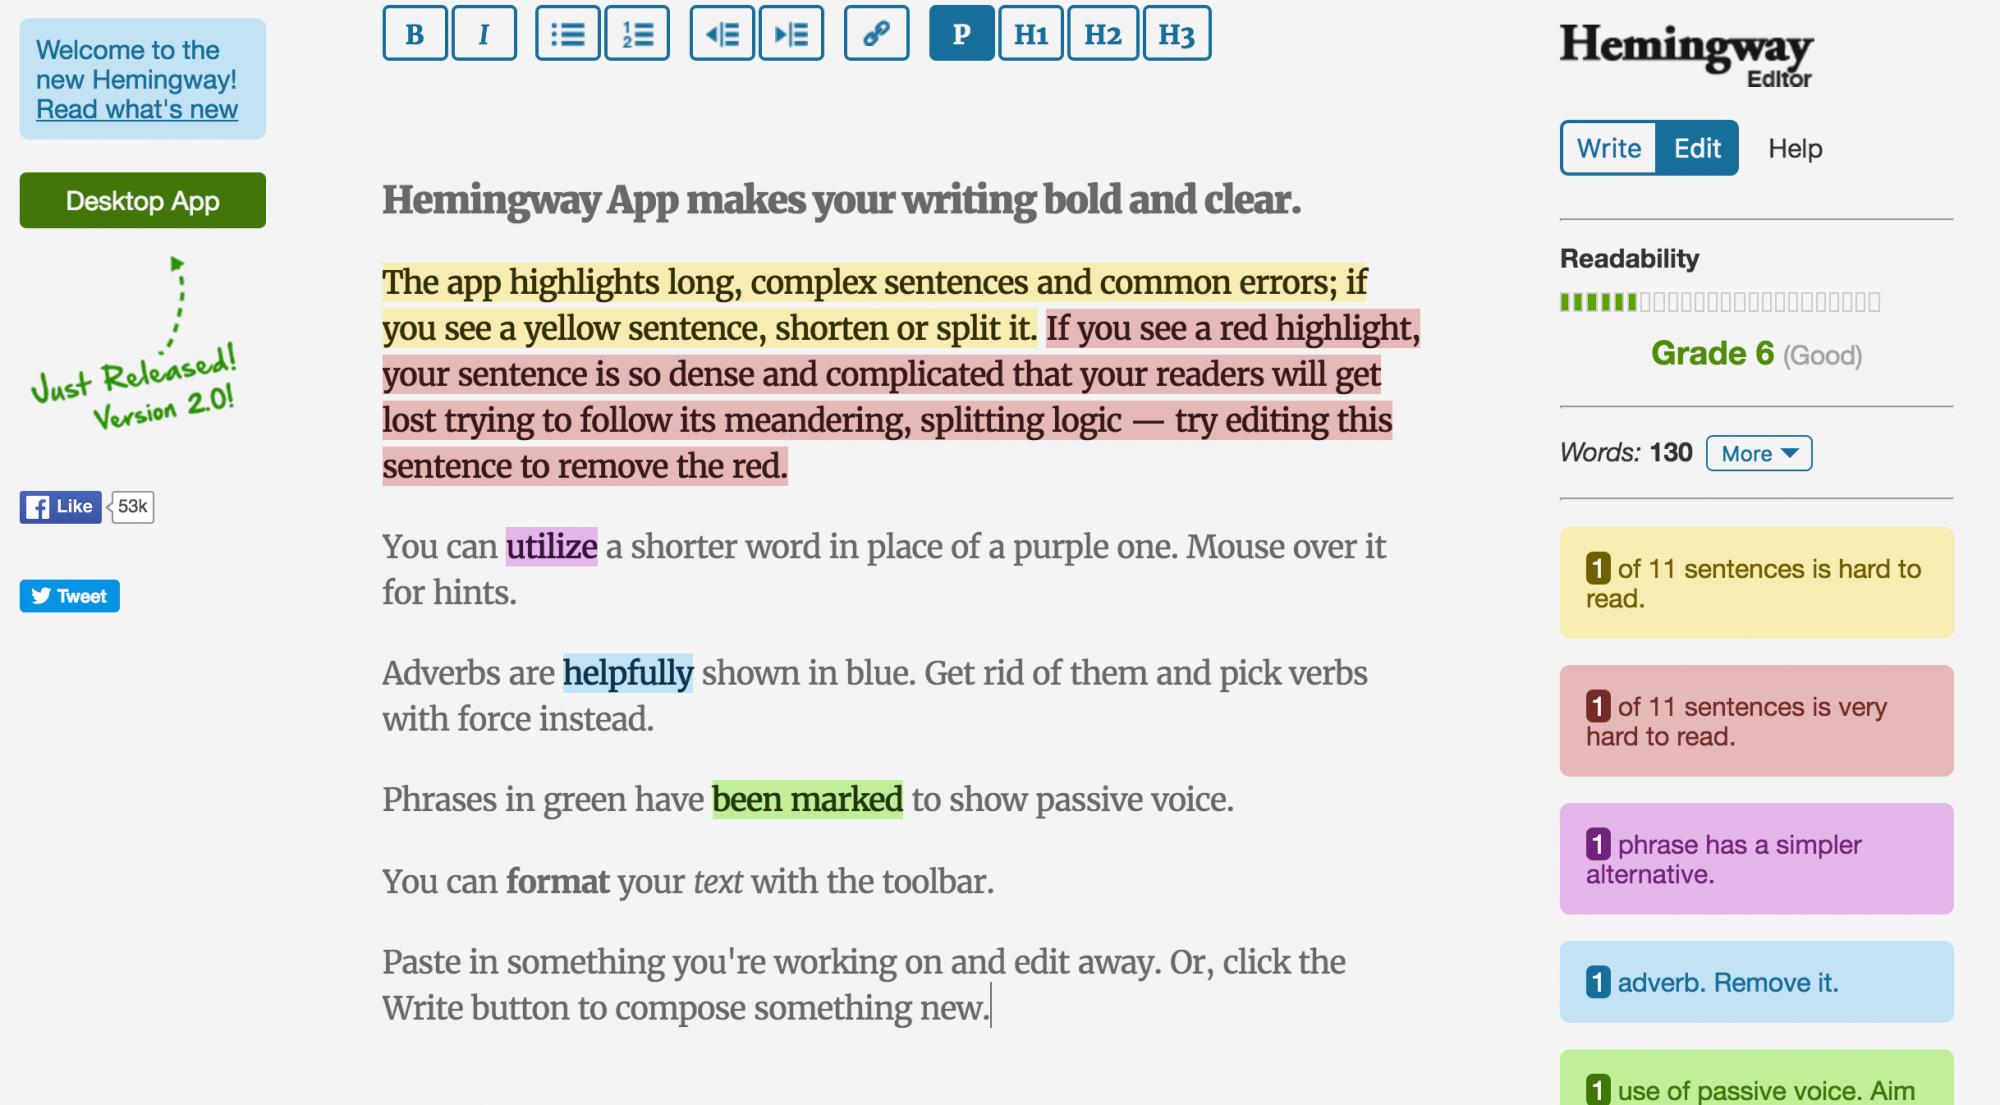 Hemingway App makes your writing bold and clear.